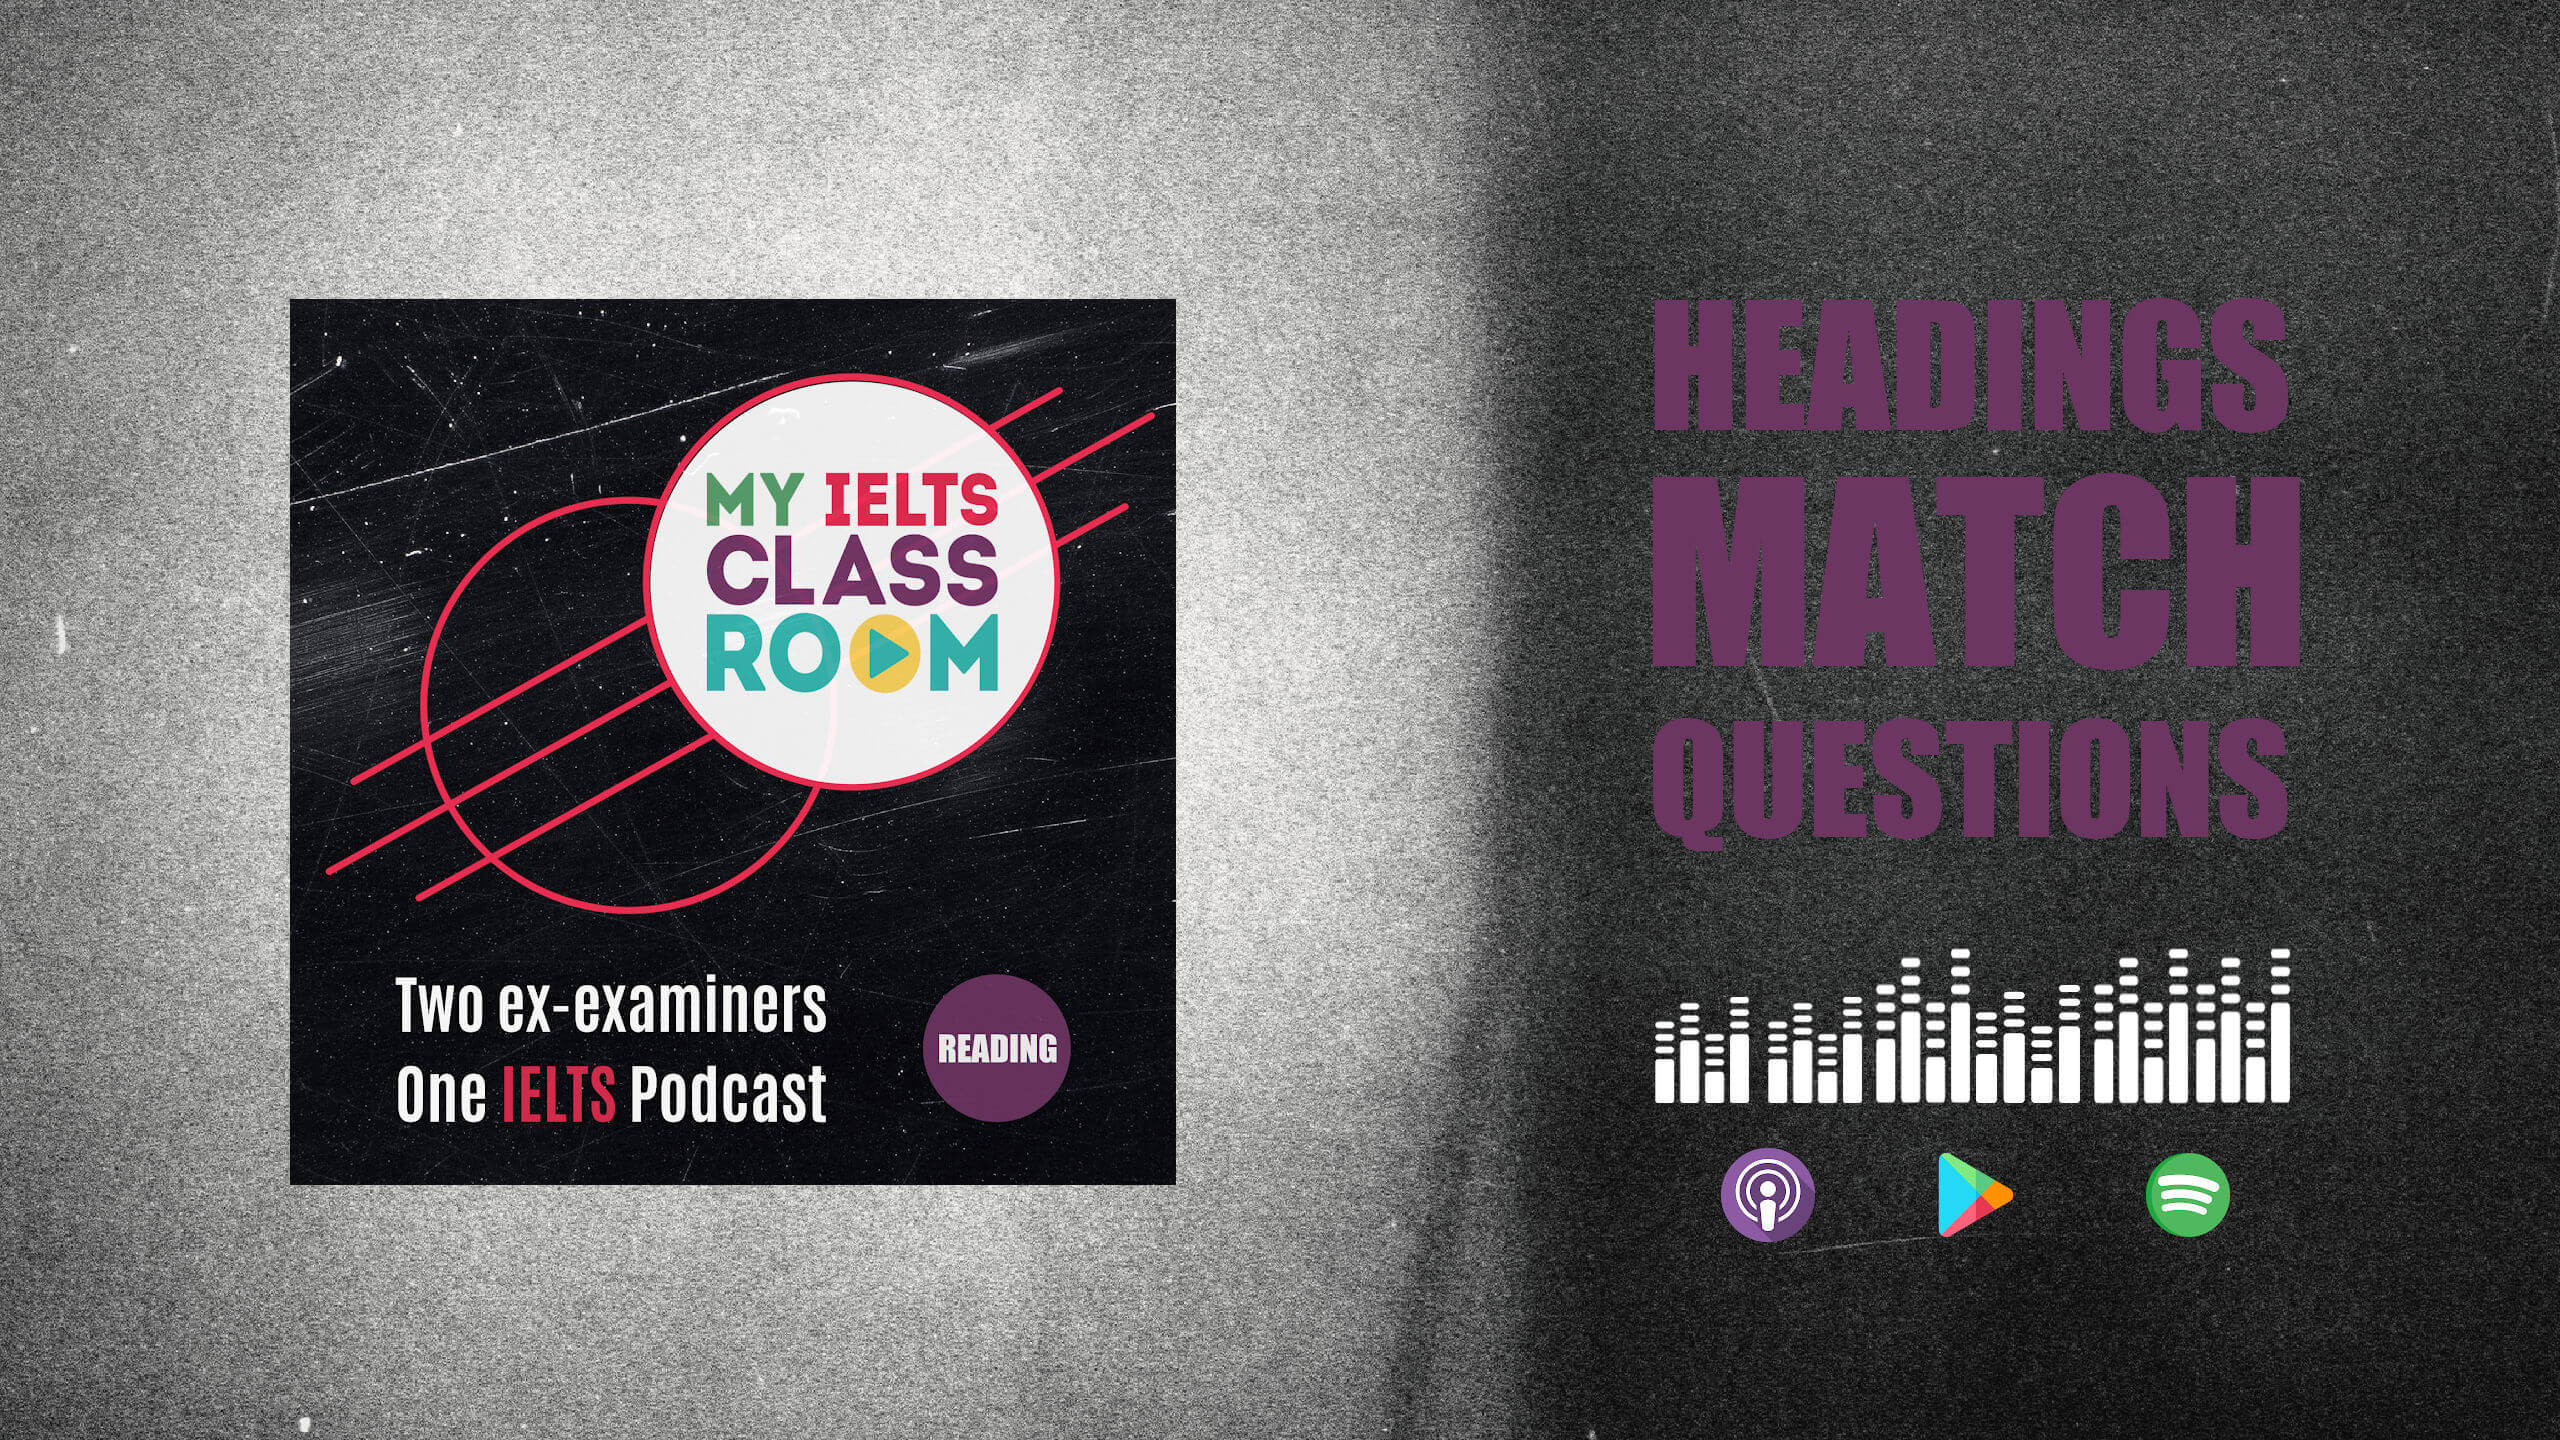 The words IELTS headings matching sit next to the My IELTS Classroom podcast logo